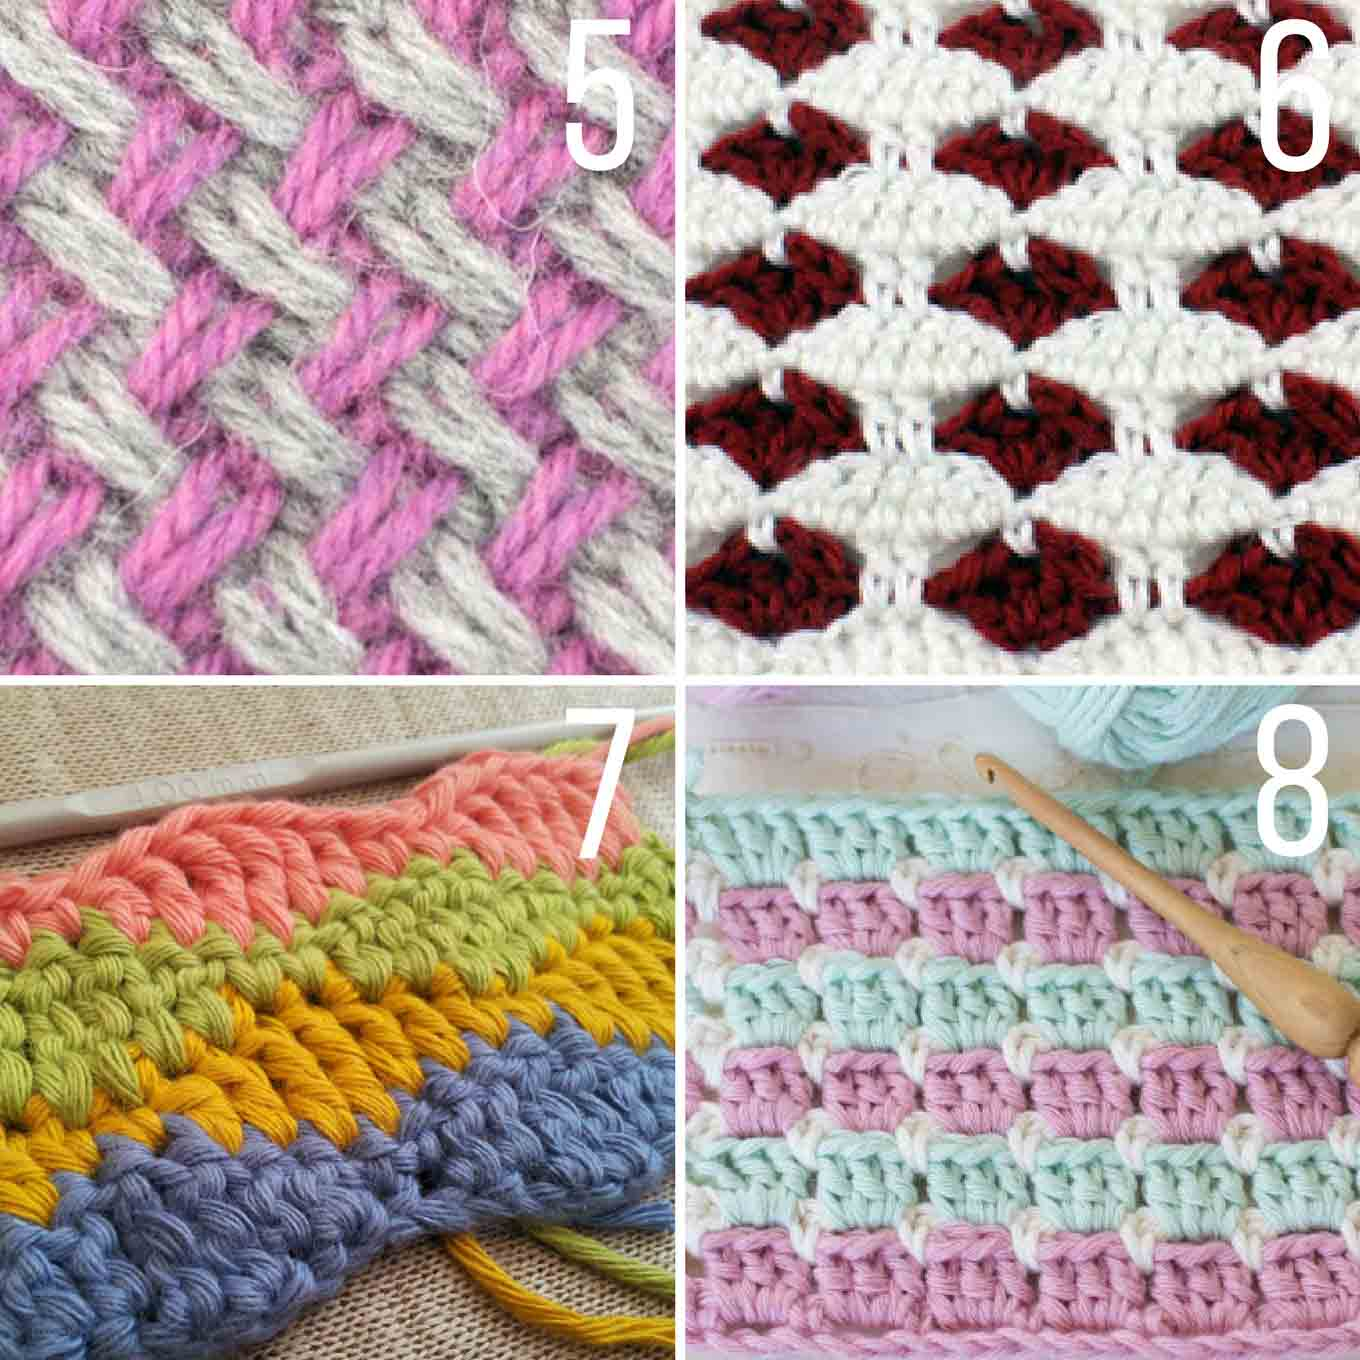 Crochet Stitches Directory : ... crochet stitches list has something for everyone--beginner to advanced